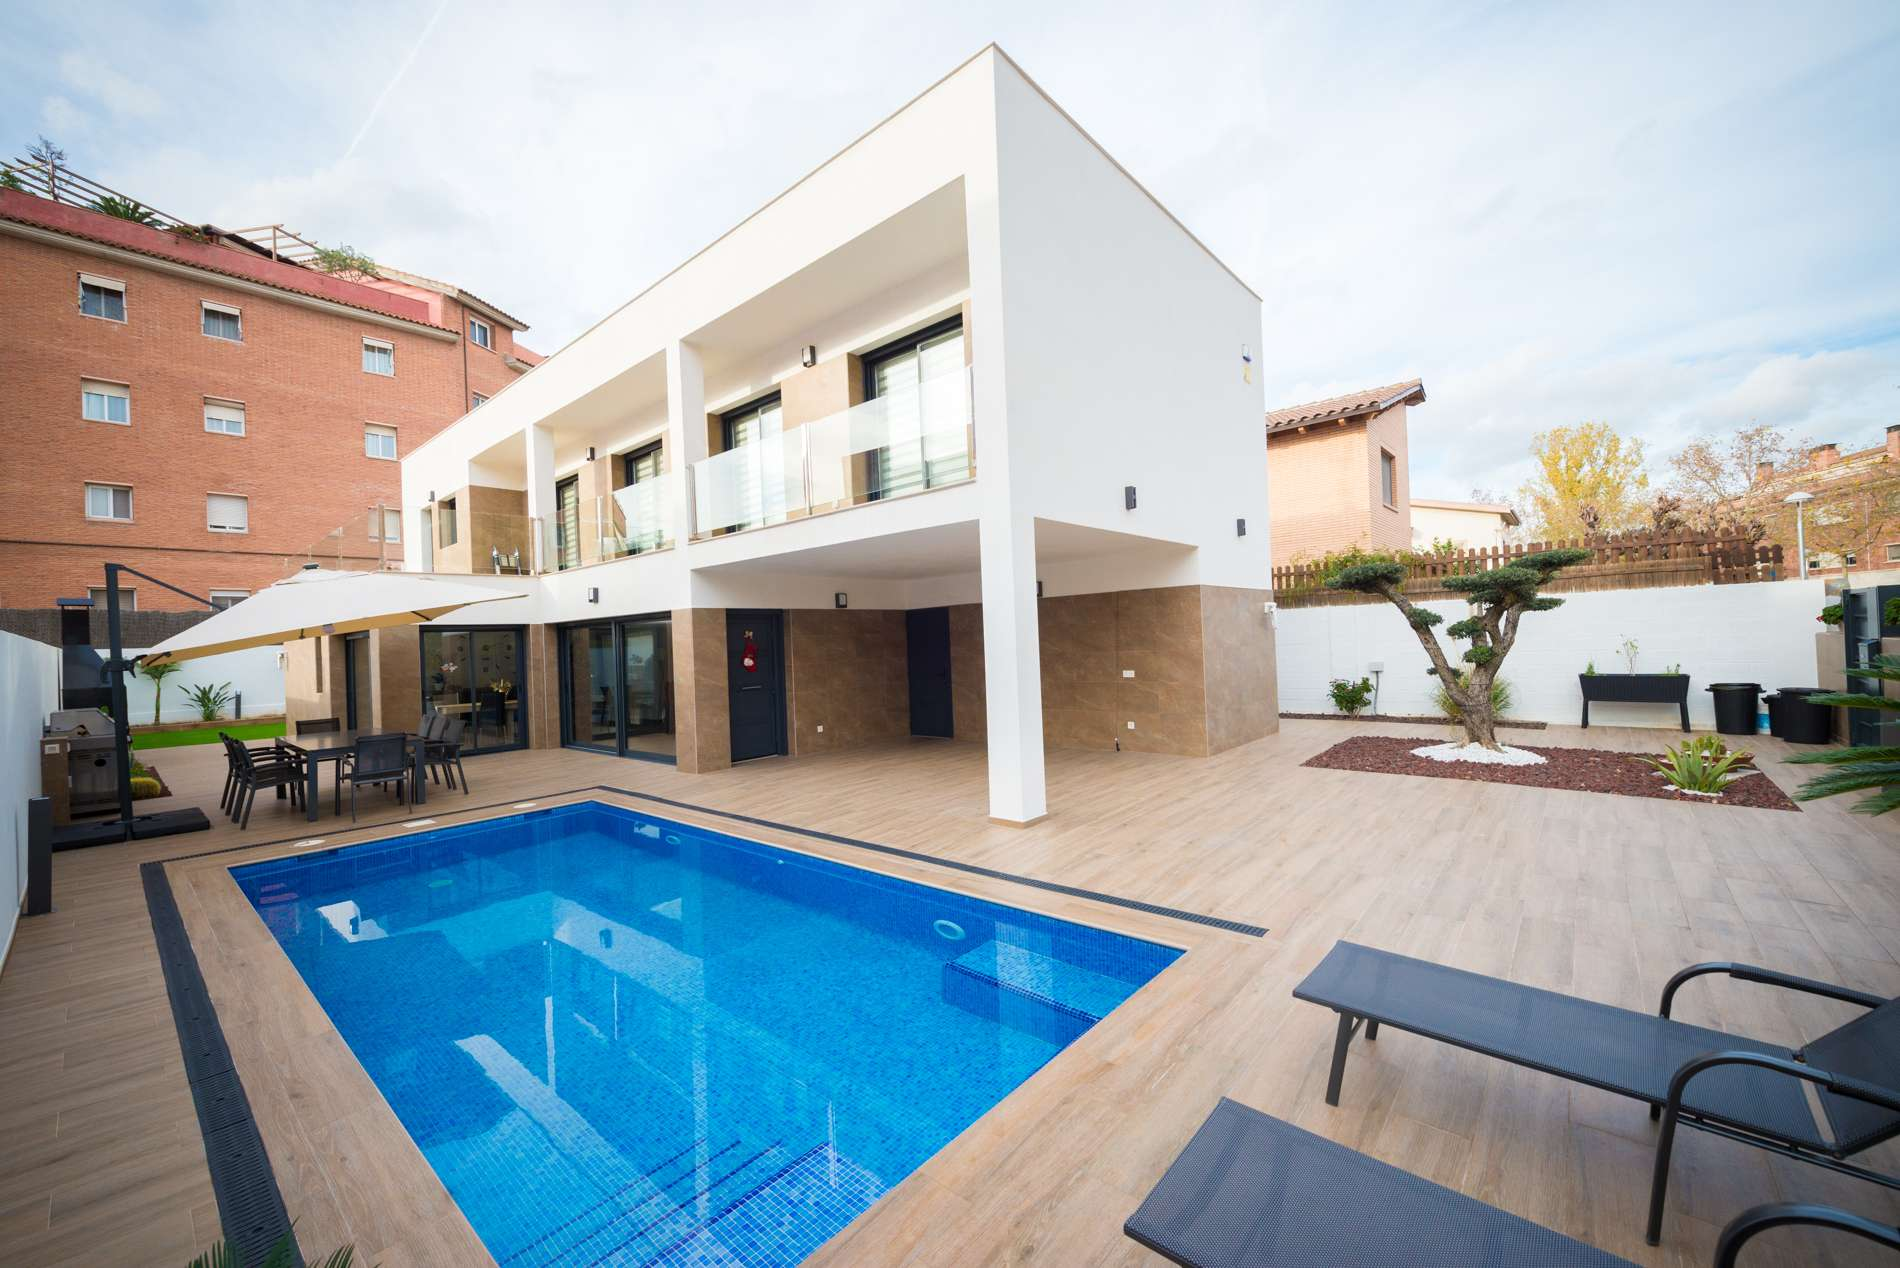 Spectacular house in Can Bou Castelldefels